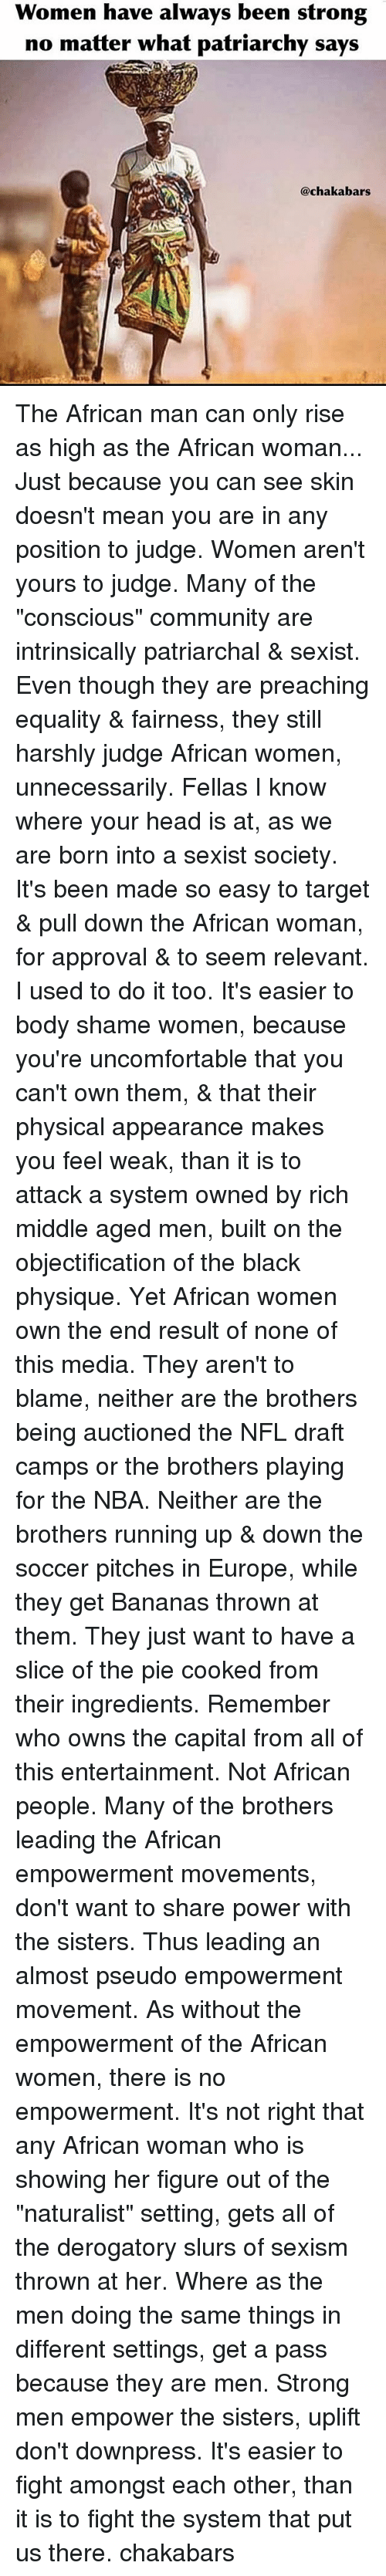 """Community, Head, and Memes: Women have always been strong  no matter what patriarchy says  @chakabars The African man can only rise as high as the African woman... Just because you can see skin doesn't mean you are in any position to judge. Women aren't yours to judge. Many of the """"conscious"""" community are intrinsically patriarchal & sexist. Even though they are preaching equality & fairness, they still harshly judge African women, unnecessarily. Fellas I know where your head is at, as we are born into a sexist society. It's been made so easy to target & pull down the African woman, for approval & to seem relevant. I used to do it too. It's easier to body shame women, because you're uncomfortable that you can't own them, & that their physical appearance makes you feel weak, than it is to attack a system owned by rich middle aged men, built on the objectification of the black physique. Yet African women own the end result of none of this media. They aren't to blame, neither are the brothers being auctioned the NFL draft camps or the brothers playing for the NBA. Neither are the brothers running up & down the soccer pitches in Europe, while they get Bananas thrown at them. They just want to have a slice of the pie cooked from their ingredients. Remember who owns the capital from all of this entertainment. Not African people. Many of the brothers leading the African empowerment movements, don't want to share power with the sisters. Thus leading an almost pseudo empowerment movement. As without the empowerment of the African women, there is no empowerment. It's not right that any African woman who is showing her figure out of the """"naturalist"""" setting, gets all of the derogatory slurs of sexism thrown at her. Where as the men doing the same things in different settings, get a pass because they are men. Strong men empower the sisters, uplift don't downpress. It's easier to fight amongst each other, than it is to fight the system that put us there. chakabars"""